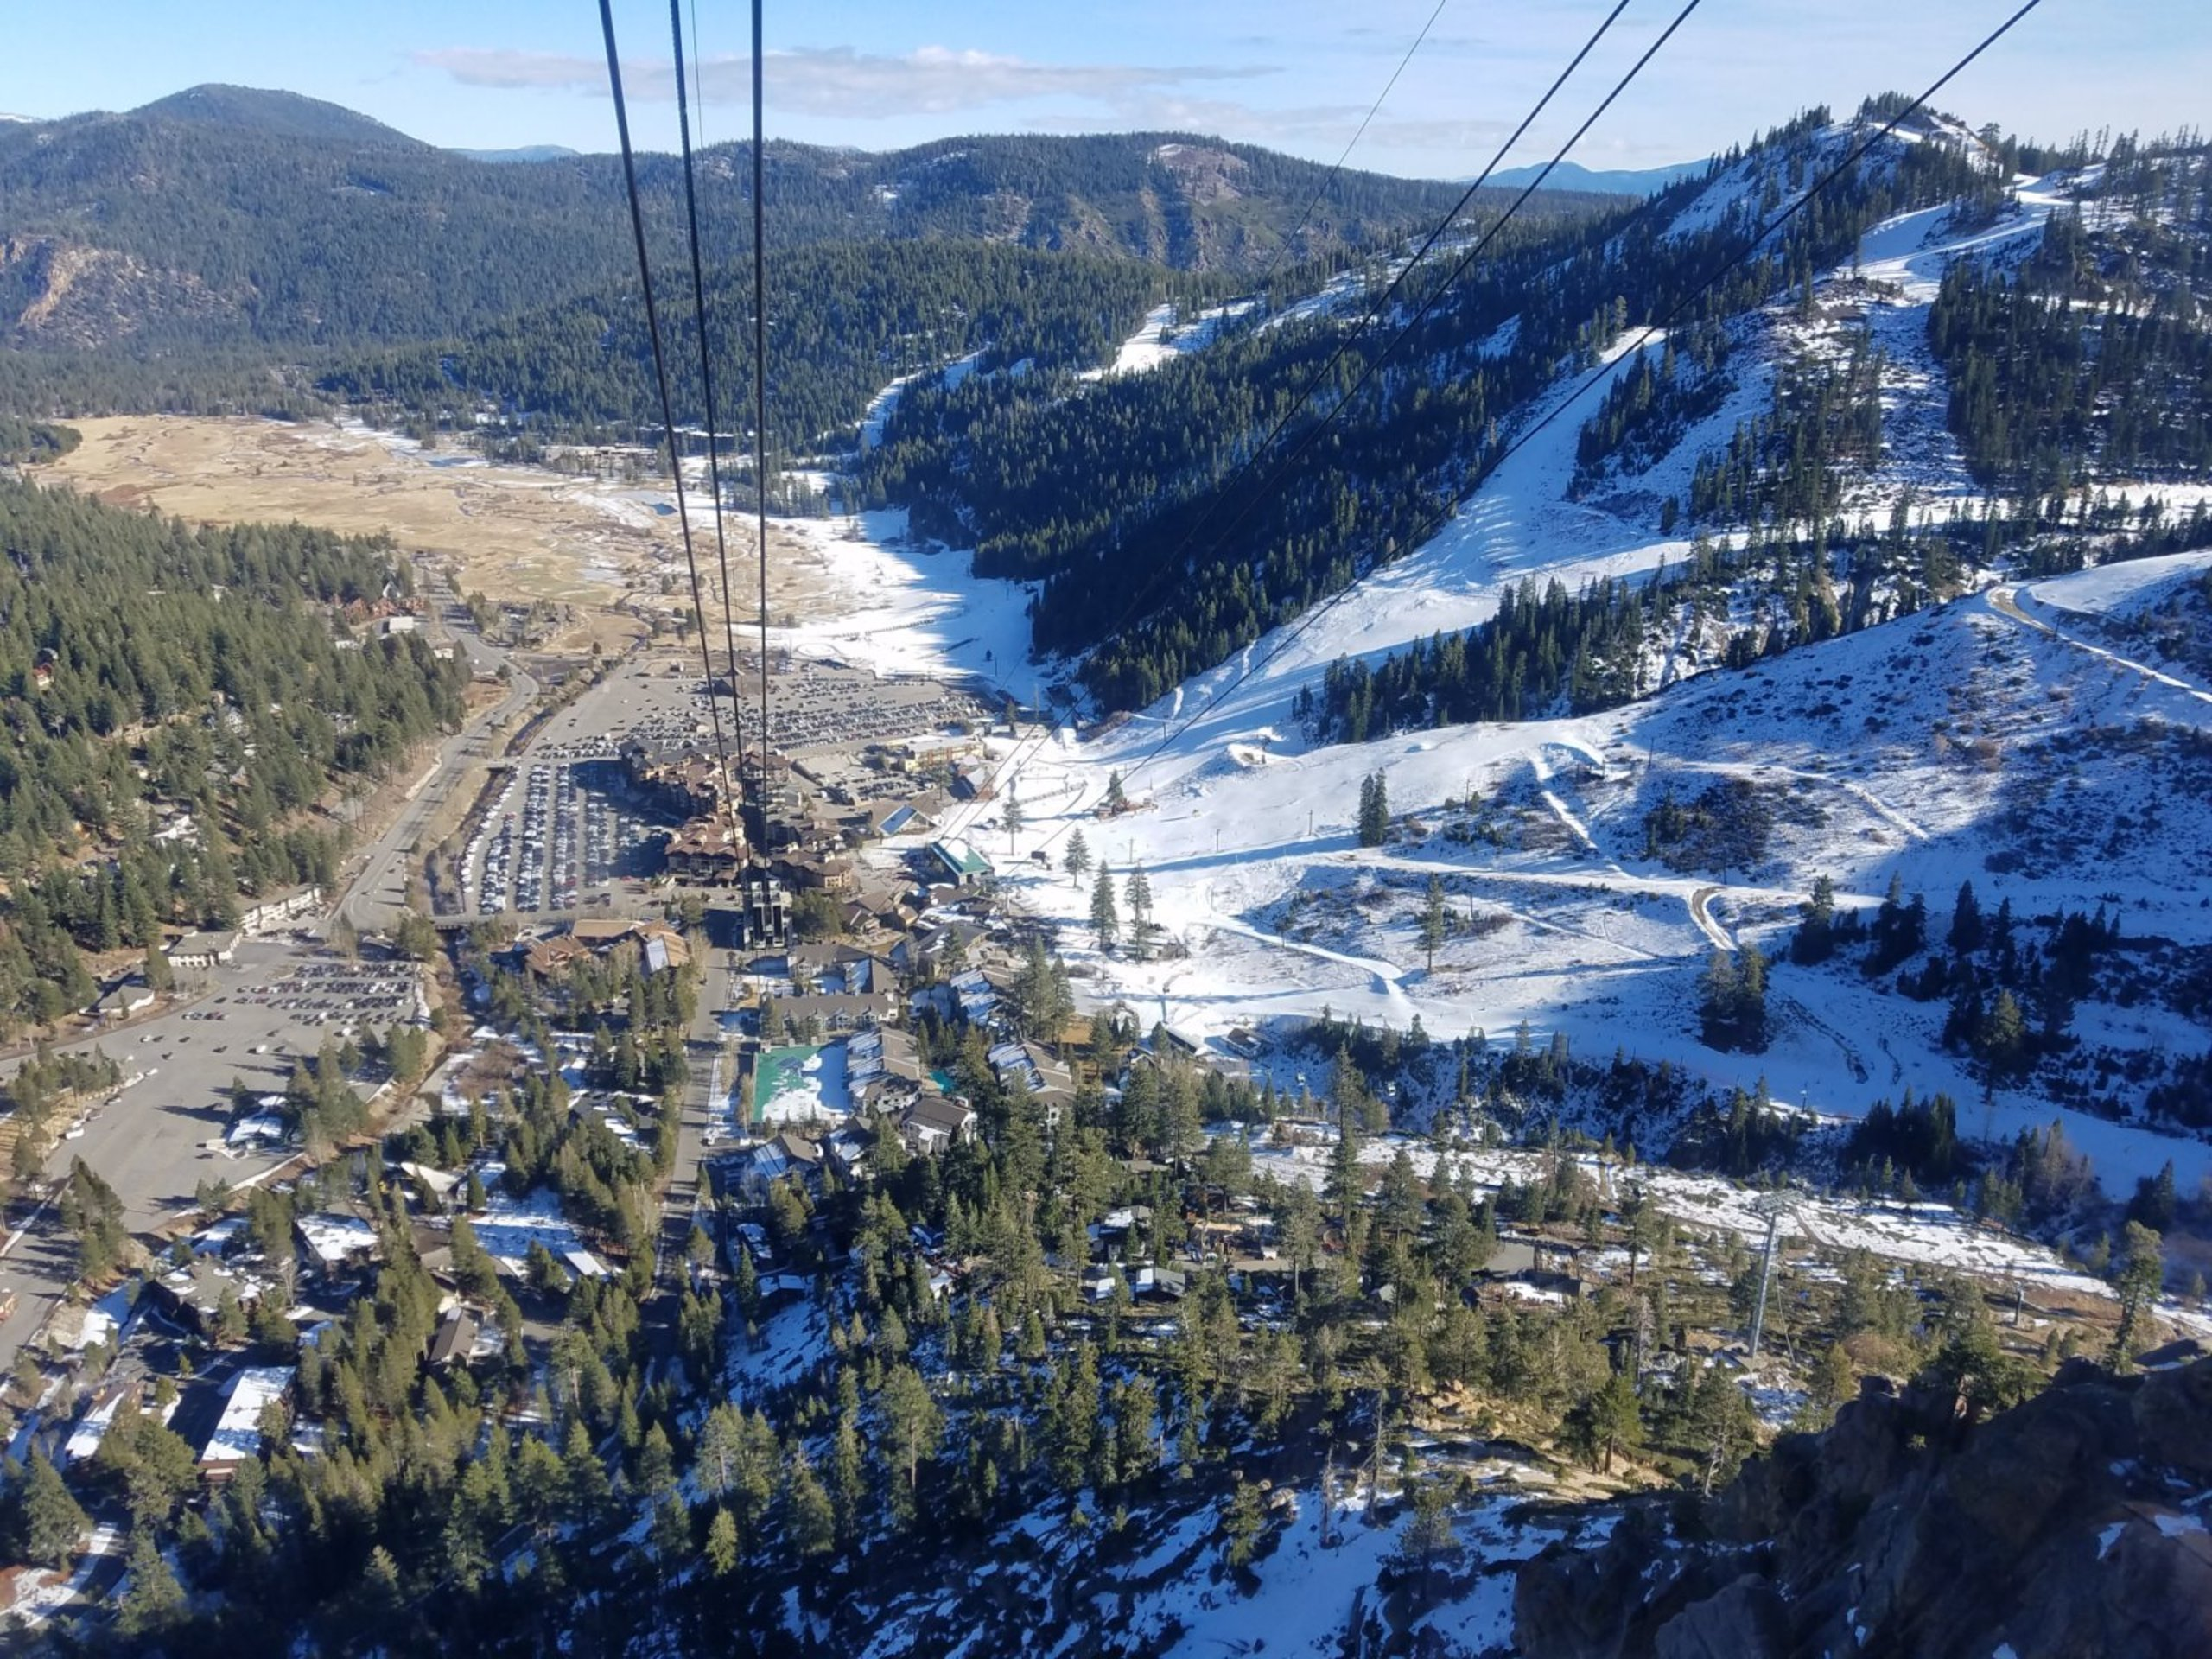 Squaw Valley Attractions During Christmas 2021 The 5 Best Things To Do In Squaw Valley 2021 With Photos Tripadvisor